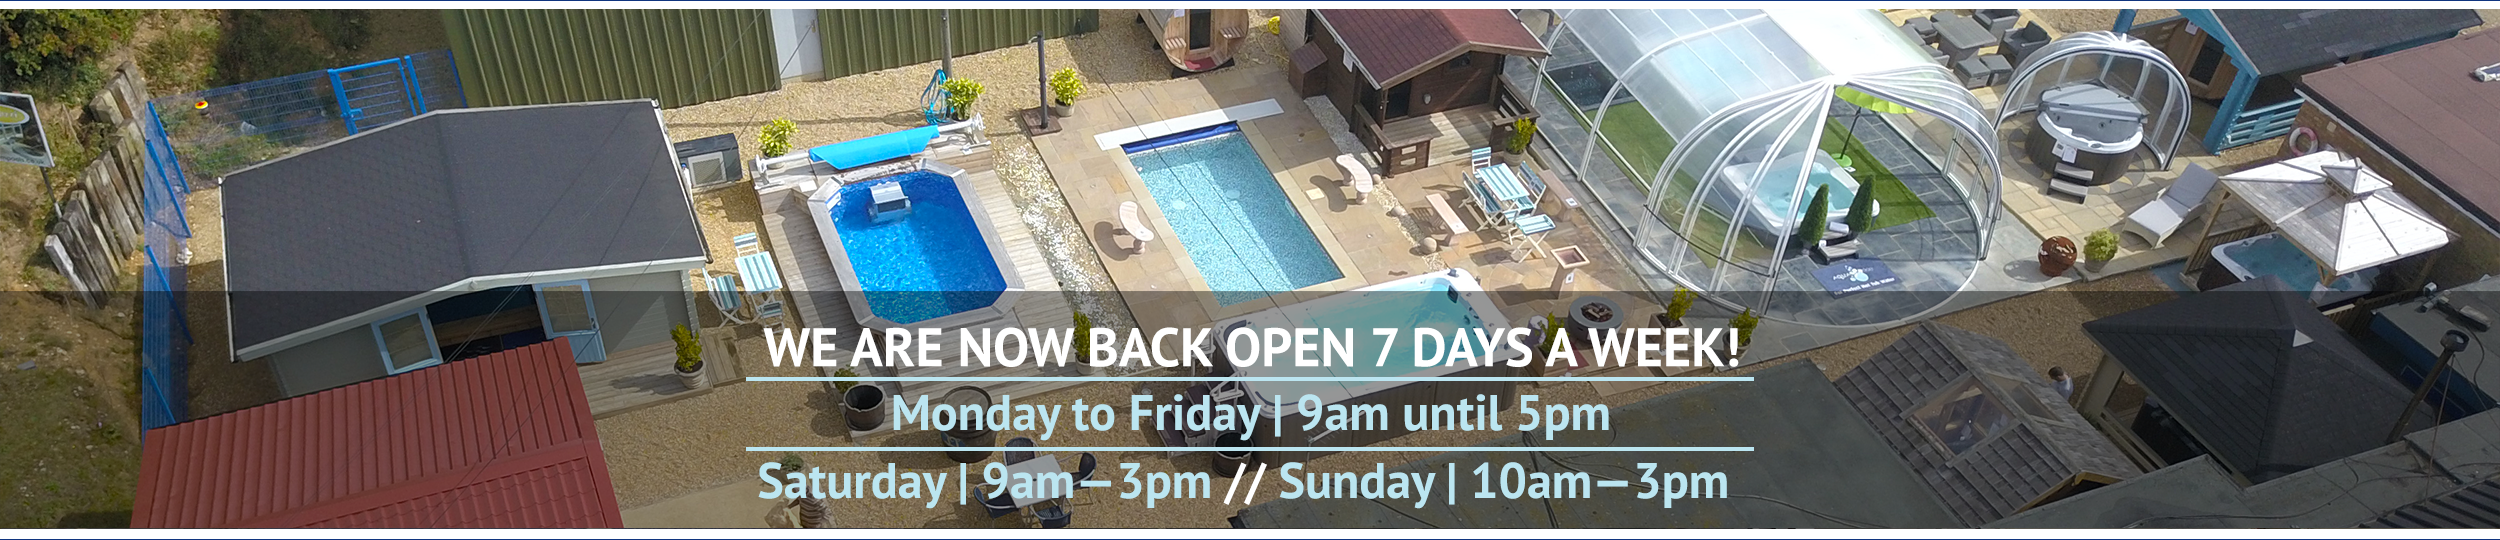 Wensum Pools is now open 7 days a week, adhering to social distancing rules.